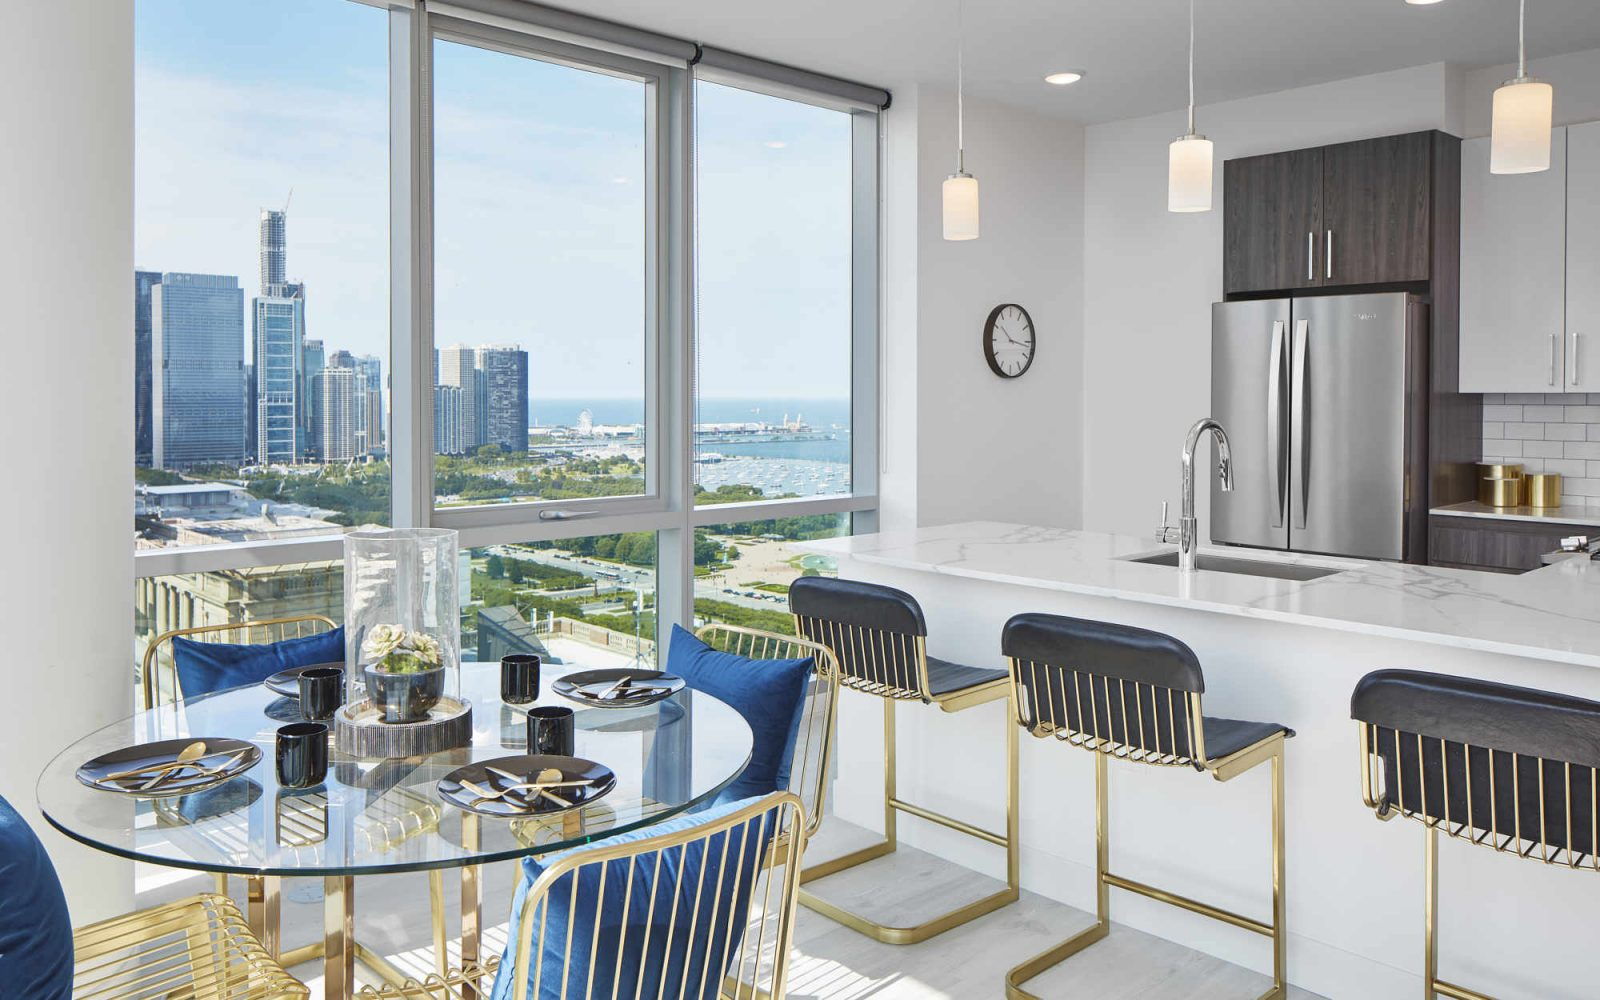 Essex model kitchen and dining area with city view